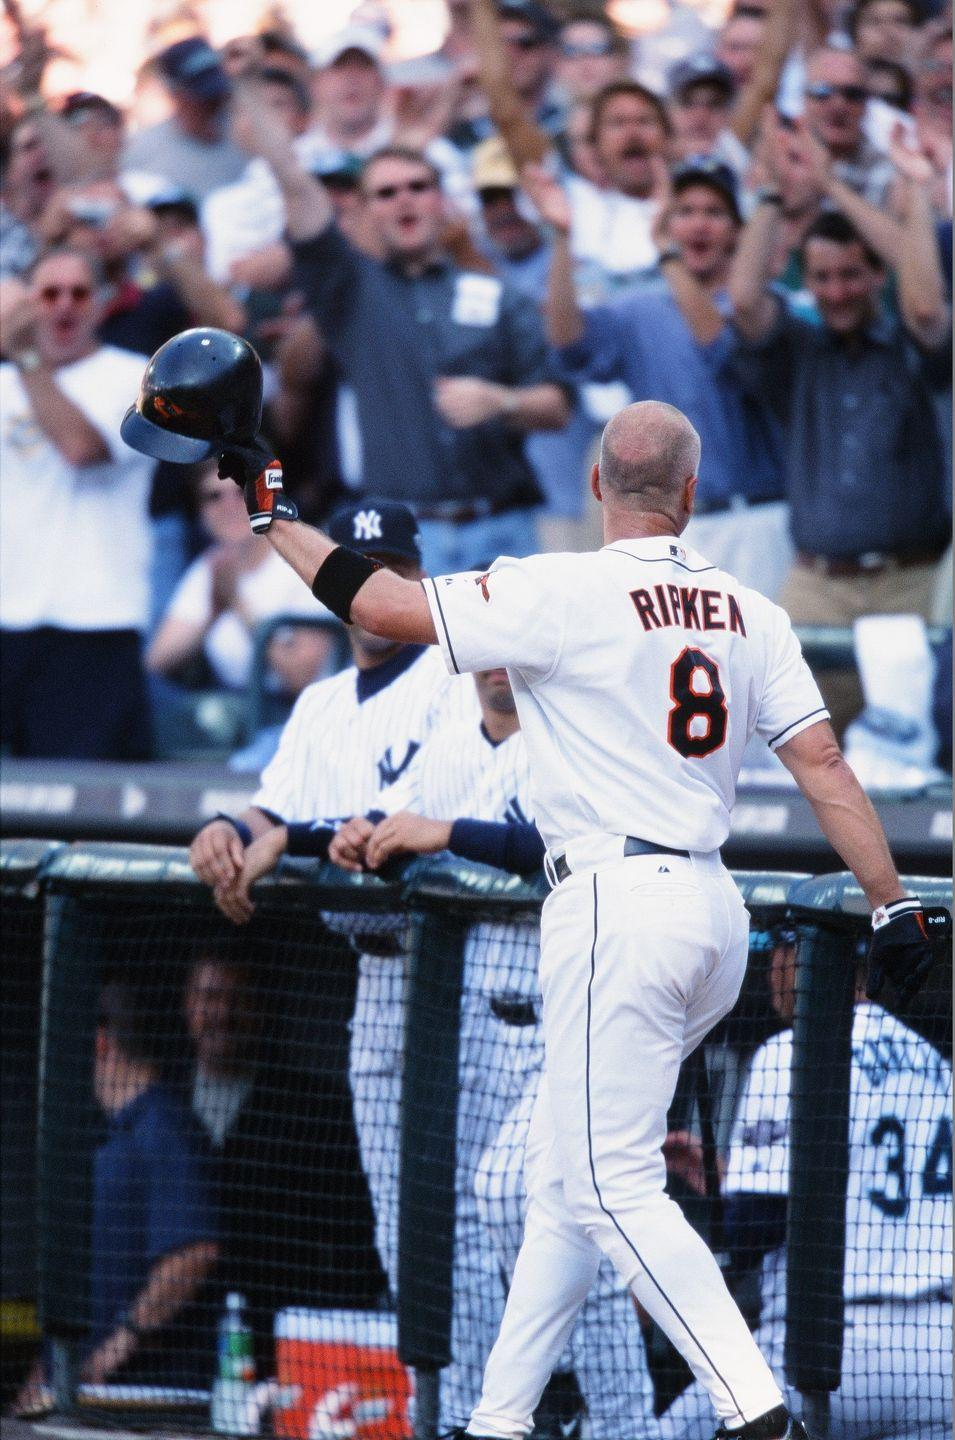 """<p><strong>July 10, 2001</strong>: In addition to being baseball's all-time Iron Man, Cal Ripken could rise to the occasion. Case in point: He homered in the game he matched Lou Gehrig's 2,131-consecutive-games-played record, and again the next day when he broke it. So it was no surprise that he would deliver a great moment in his final All-Star Game in 2001.<br><br>Ripken, a landslide selection to start at third base for the American League, came to the plate in the third inning to the theme from the movie, <em>The Natural</em>. He received a warm ovation, so affectionate and long that he had to step out of the batter's box and acknowledge it.<br><br>When he steps back in, Dodgers pitcher Chan Ho Park delivers the first pitch...and Ripken sends it over the fence in left field. He becomes the oldest player (40 years, 10 months, 16 days) to hit a home run in the All-Star Game, eclipsing Stan Musial, and is named the Game's MVP for a record second time.<br><br>""""As far as special moments go, it doesn't get any better than that,"""" says fellow all-star and 2001 retiree Tony Gwynn.<br> </p>"""